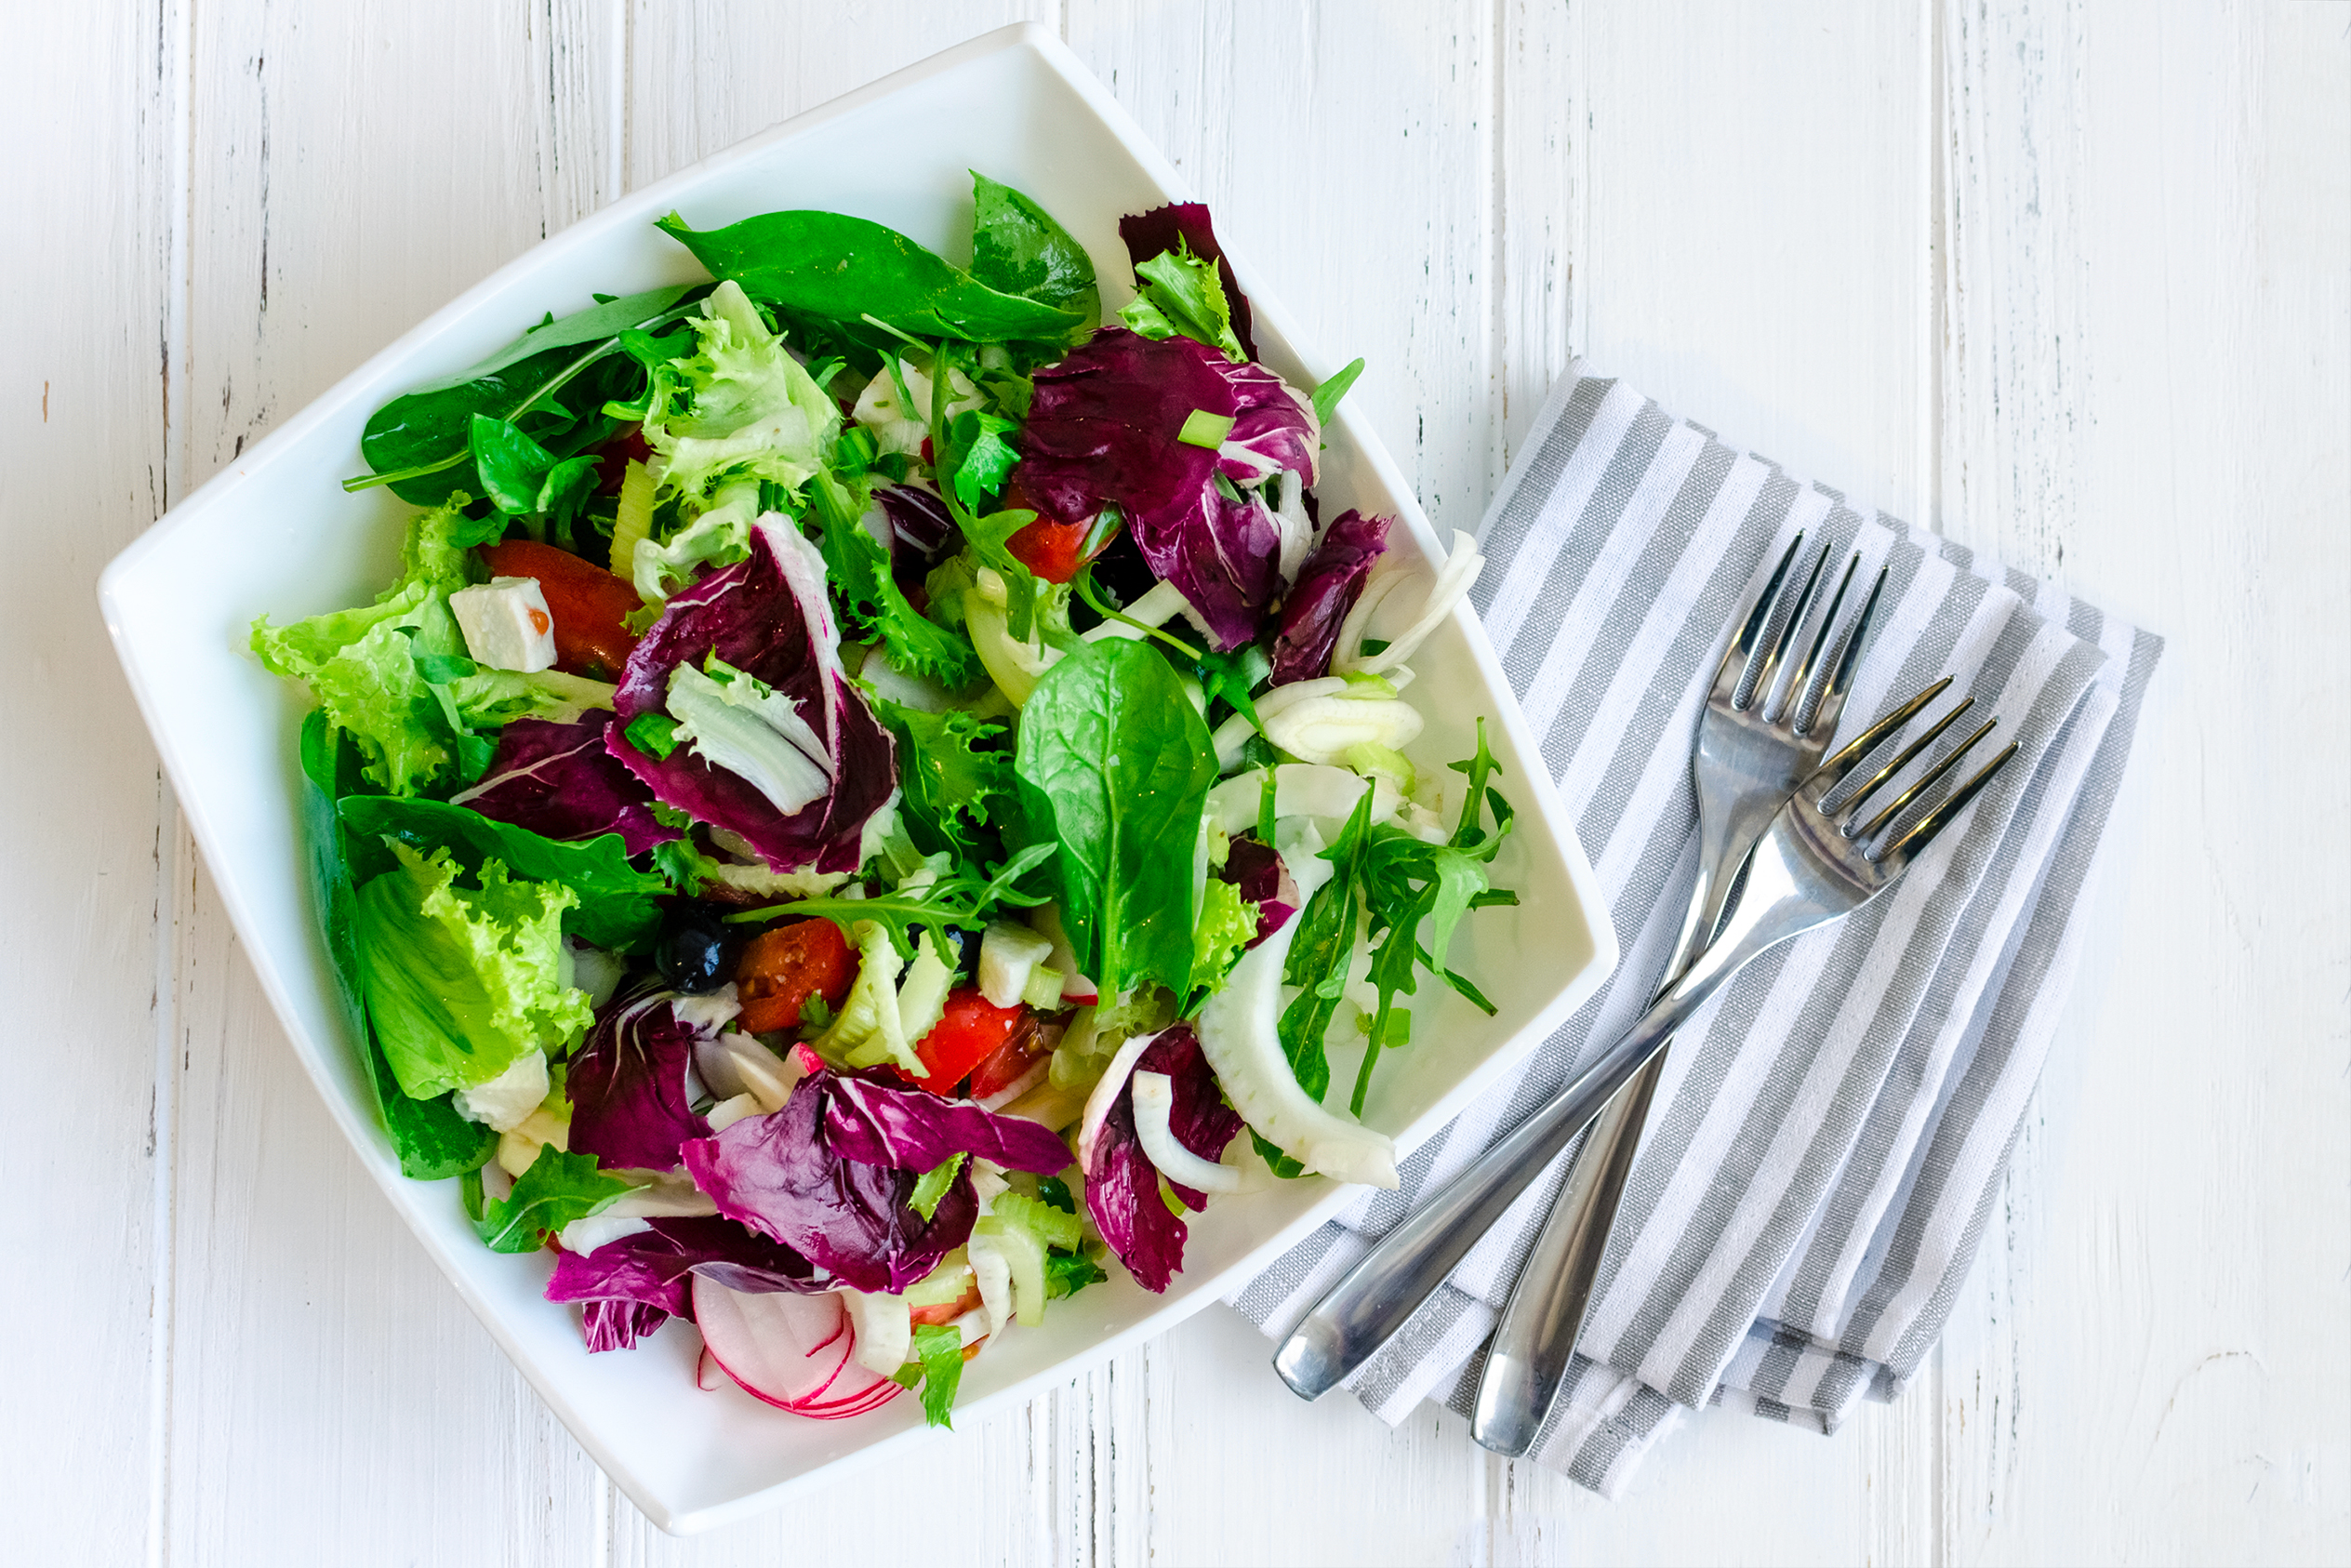 The Serving Size for Dark Green, Leafy Vegetables   Healthy